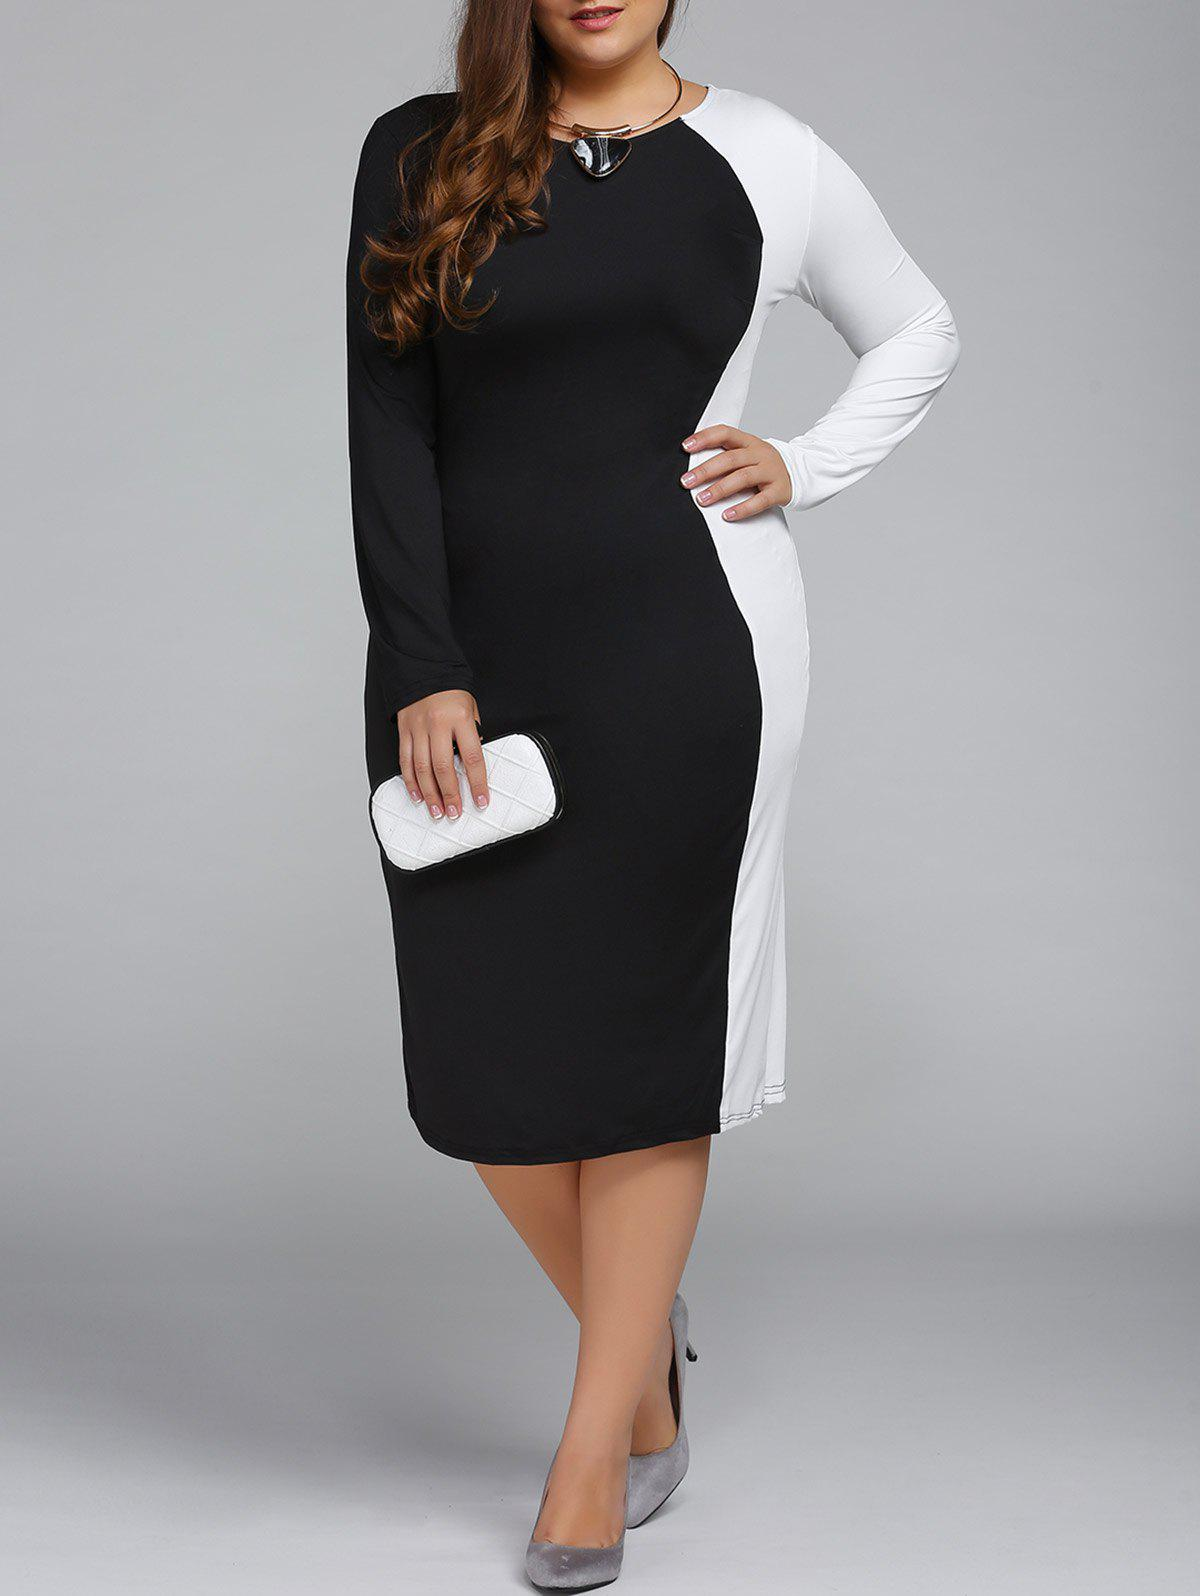 Plus Size Color Block Long Sleeve Sheath Modest Work Dress 574 classic